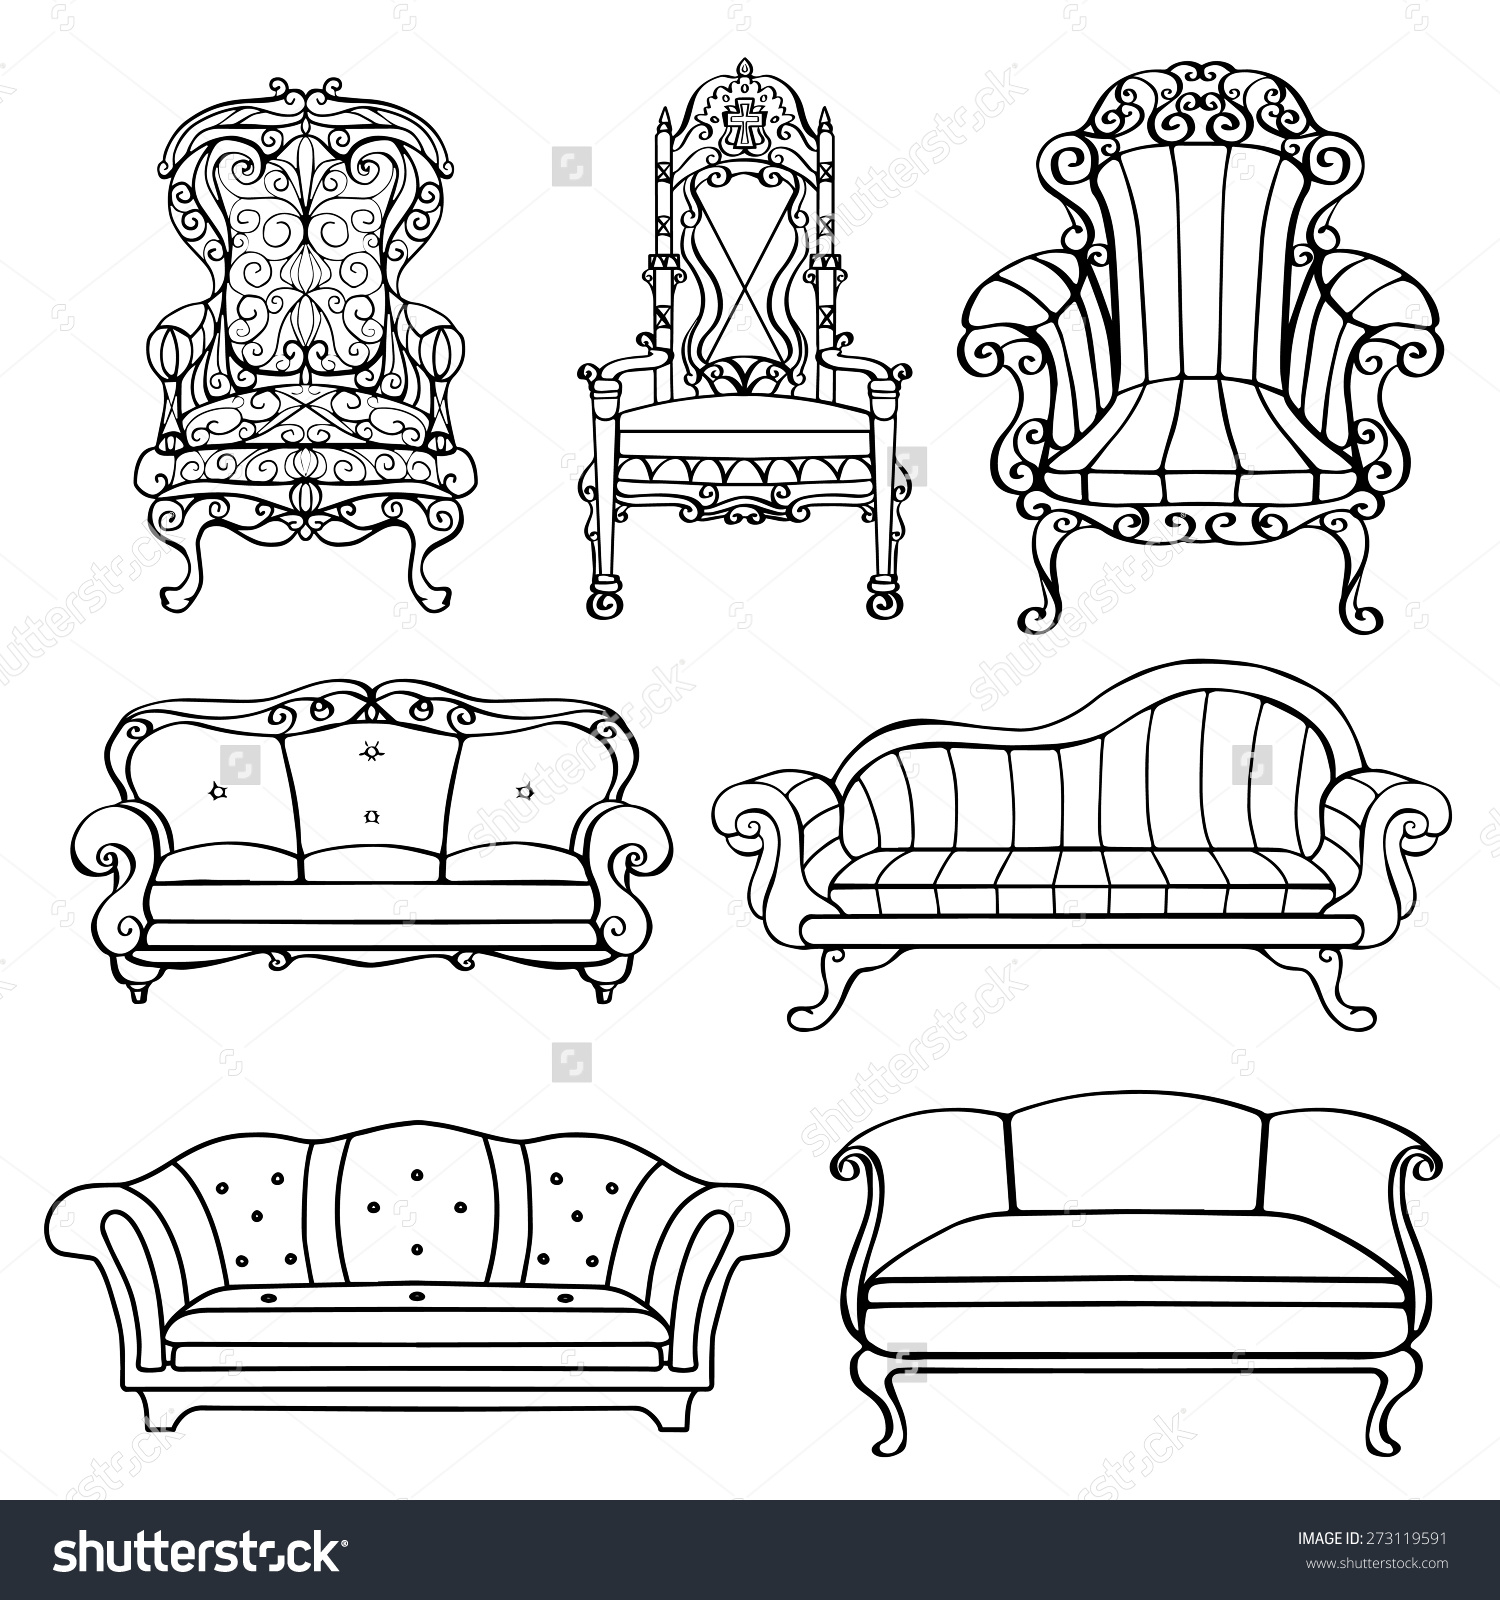 Furniture Chair Armchair Throne Sofa Couch Stock Vector 273119591.